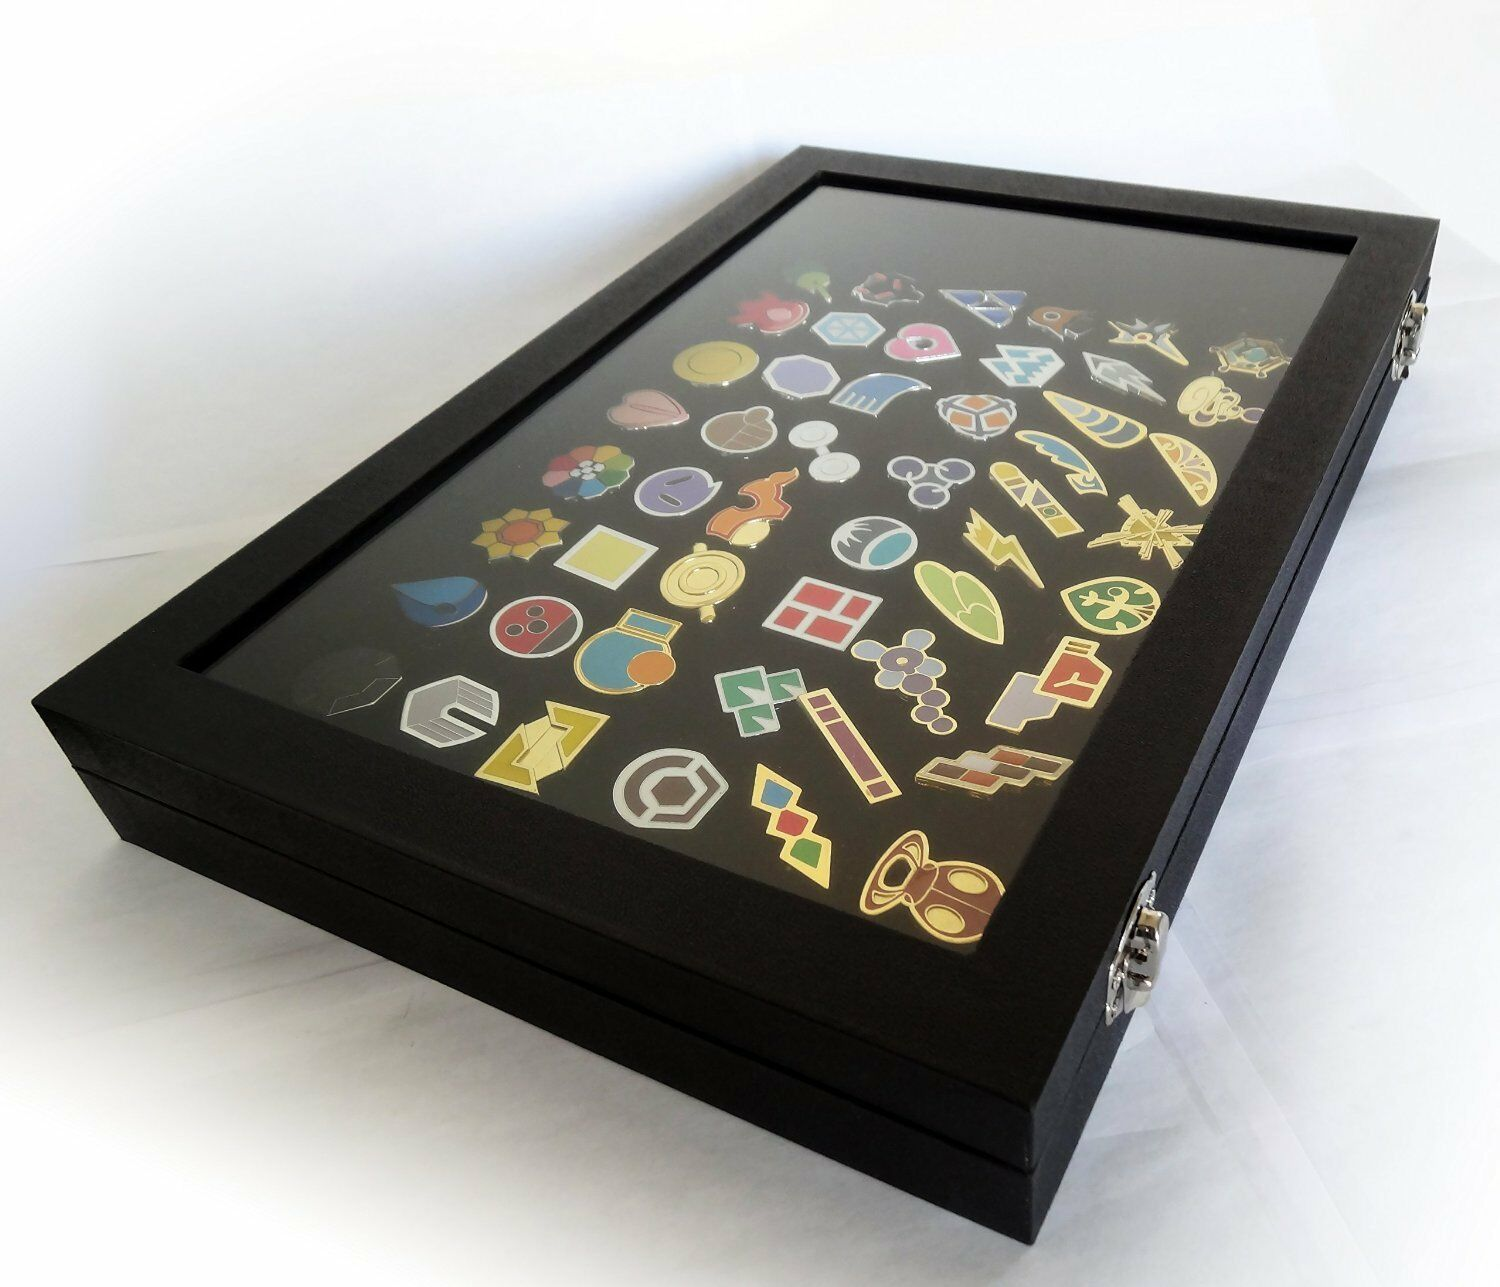 Pokemon Gym Badges with Glass Lid Display Showcase Set of 50 Lapel Pin Badges